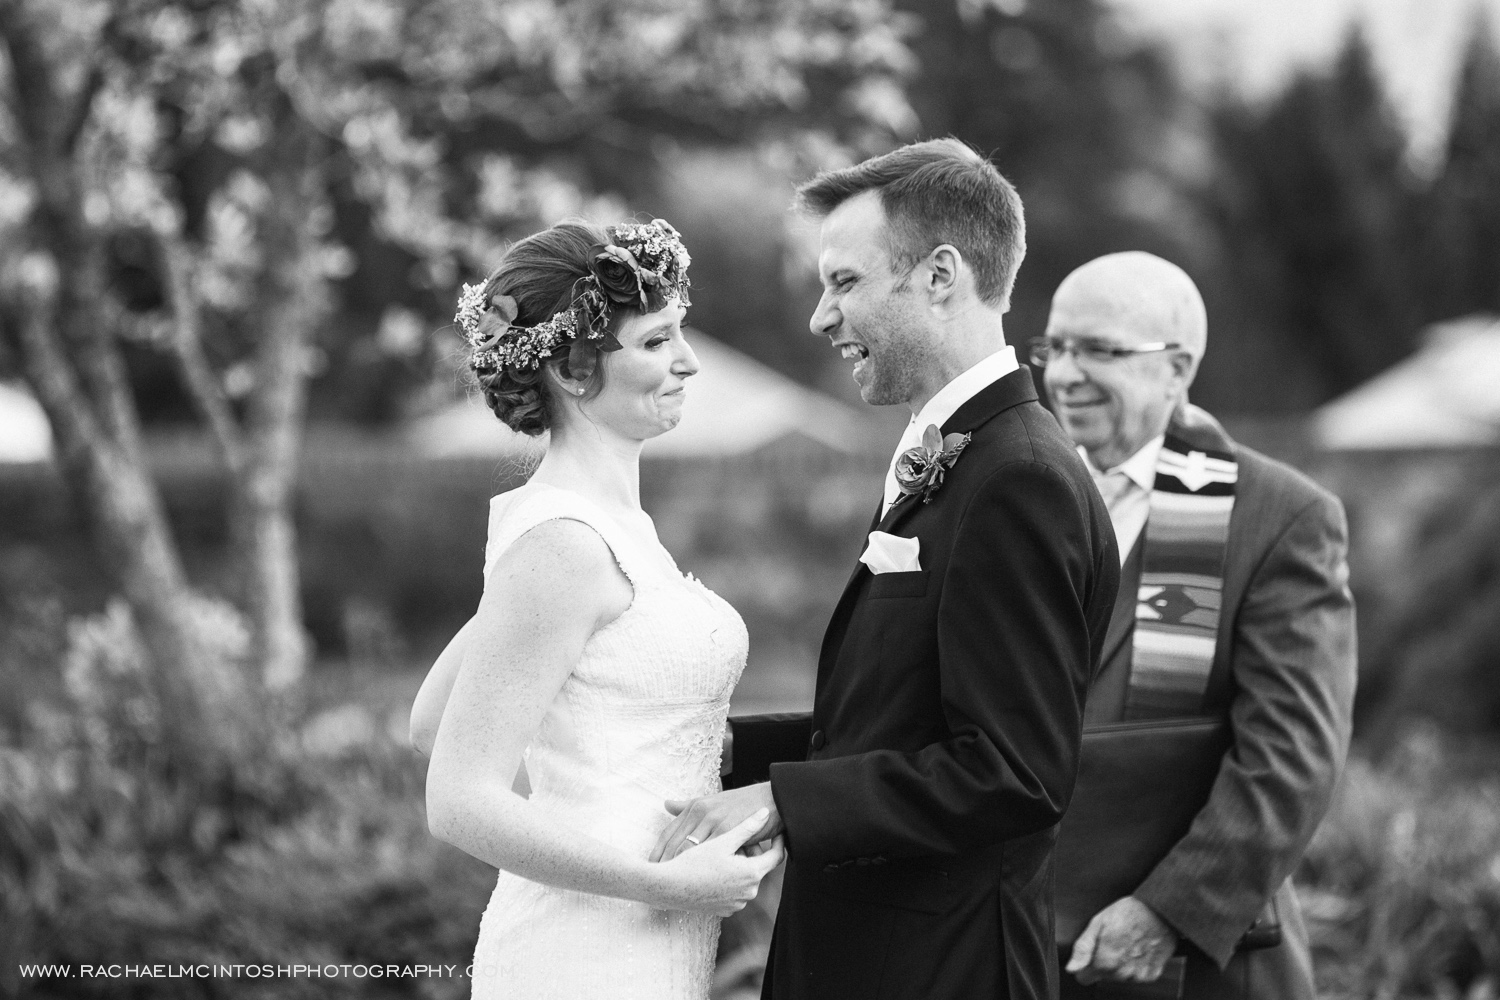 Biltmore-Wedding-Photographer-Asheville-77.jpg